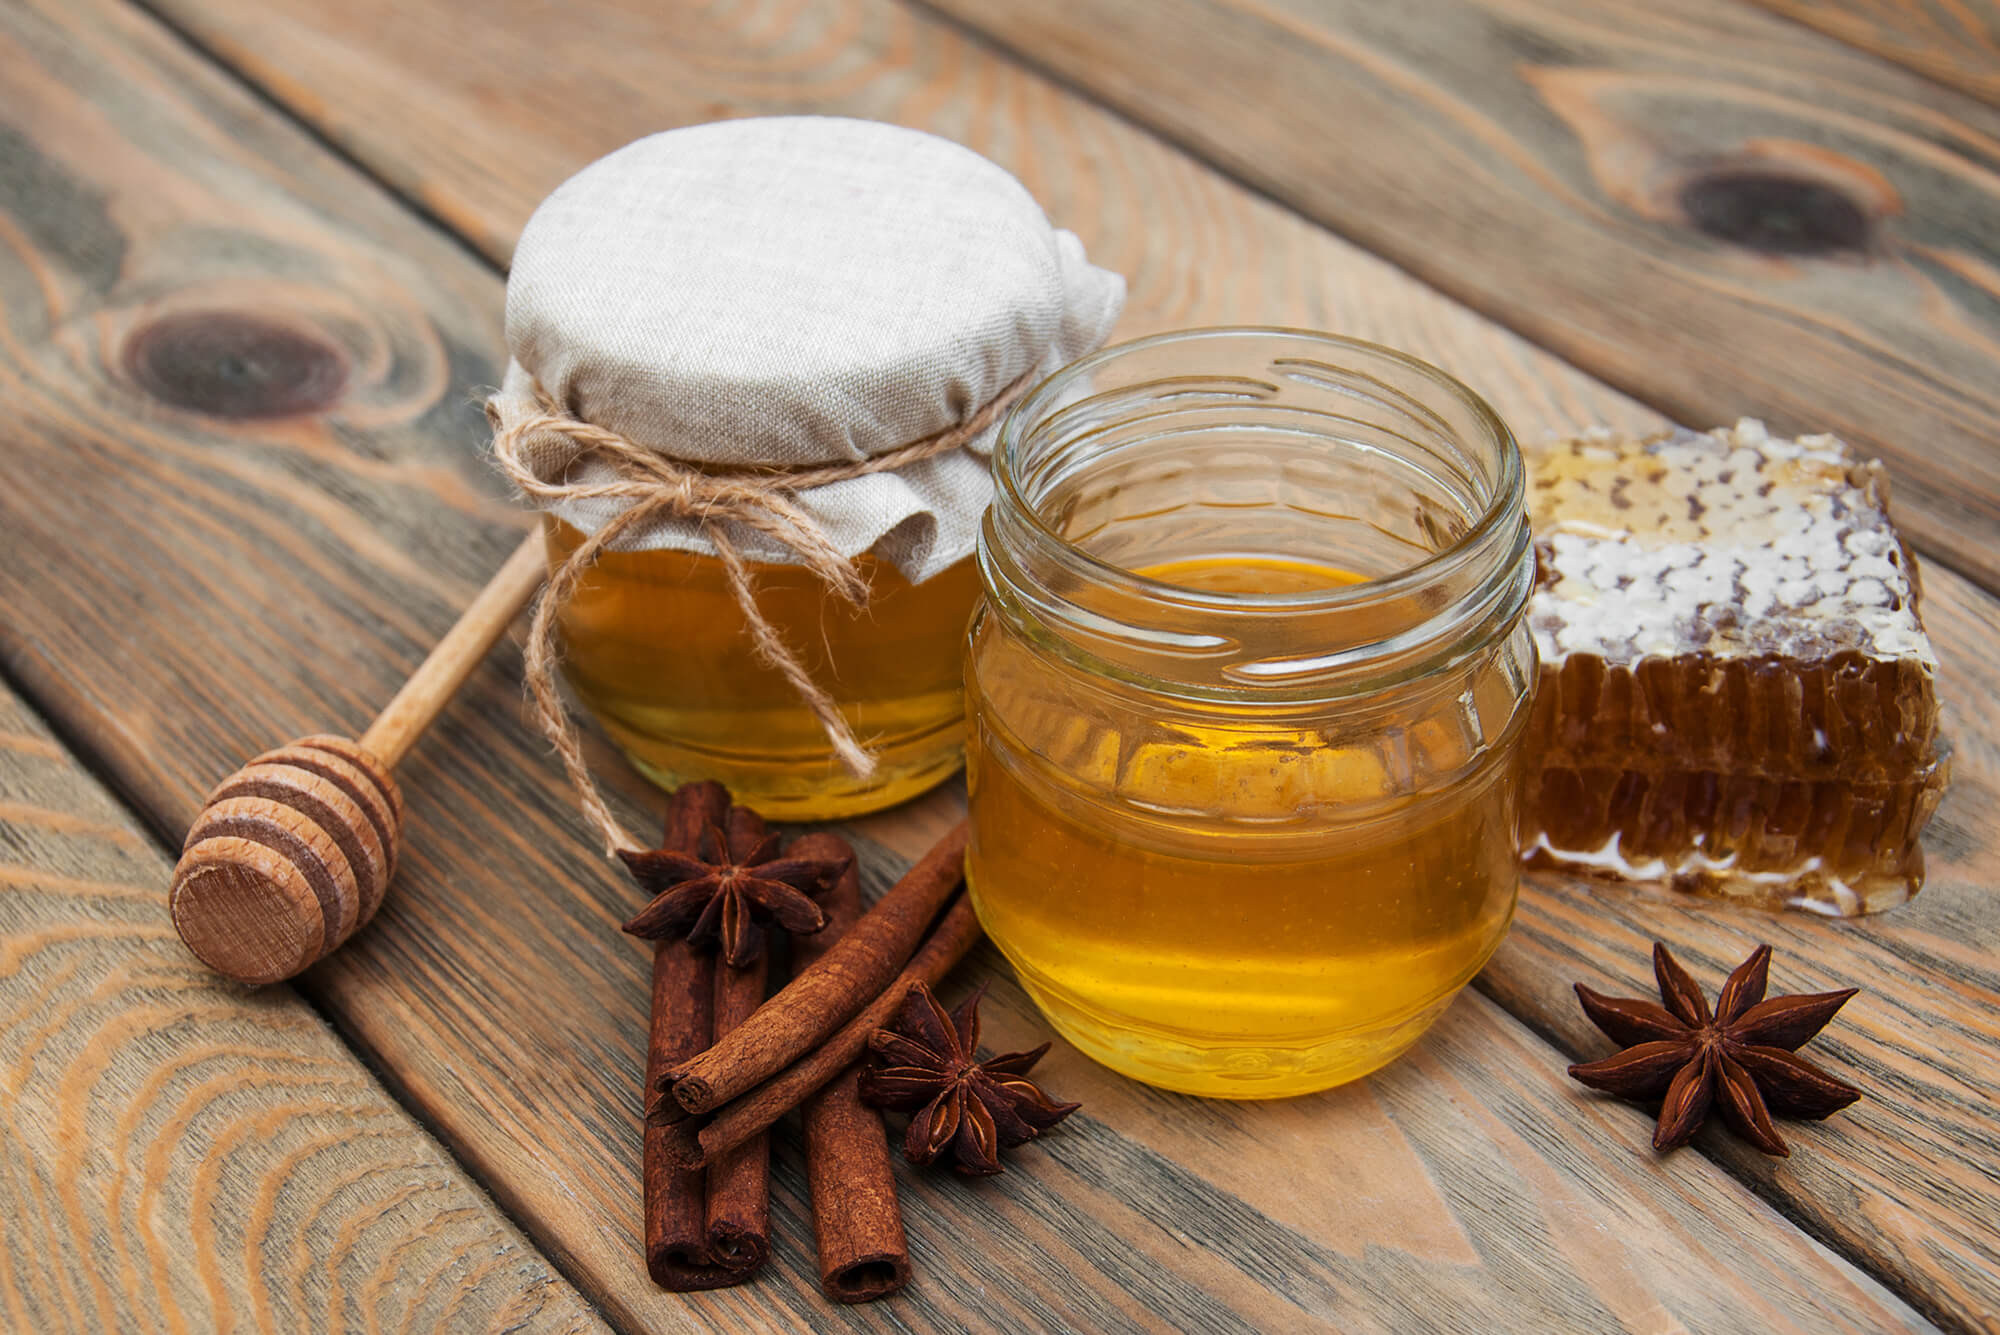 is honey and cinnamon good for your face